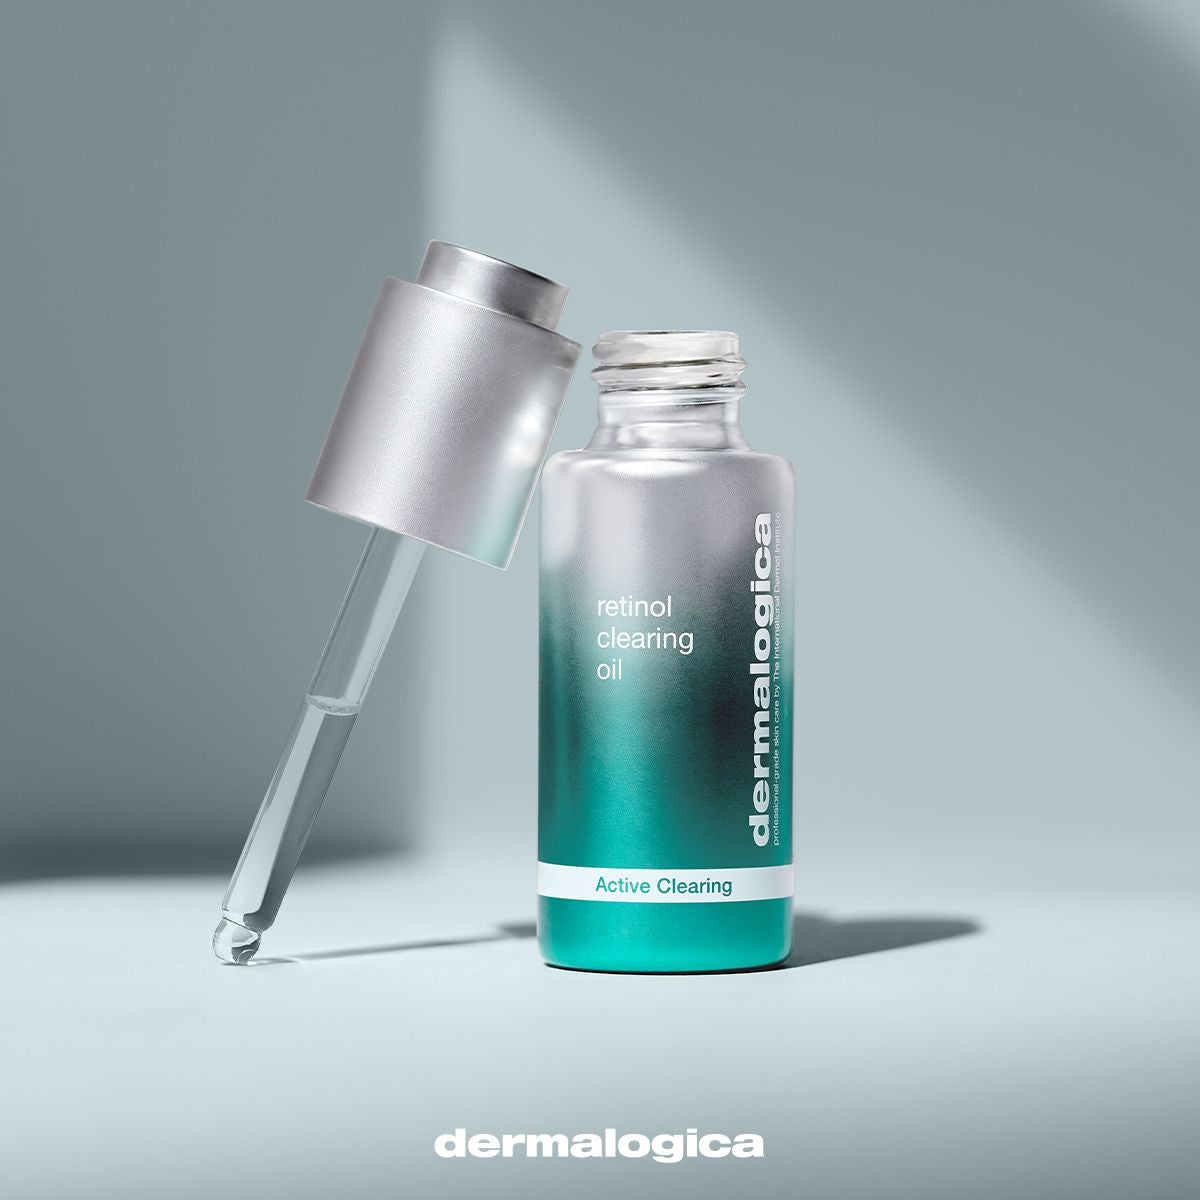 NEW Retinol Clearing Oil by Dermalogica